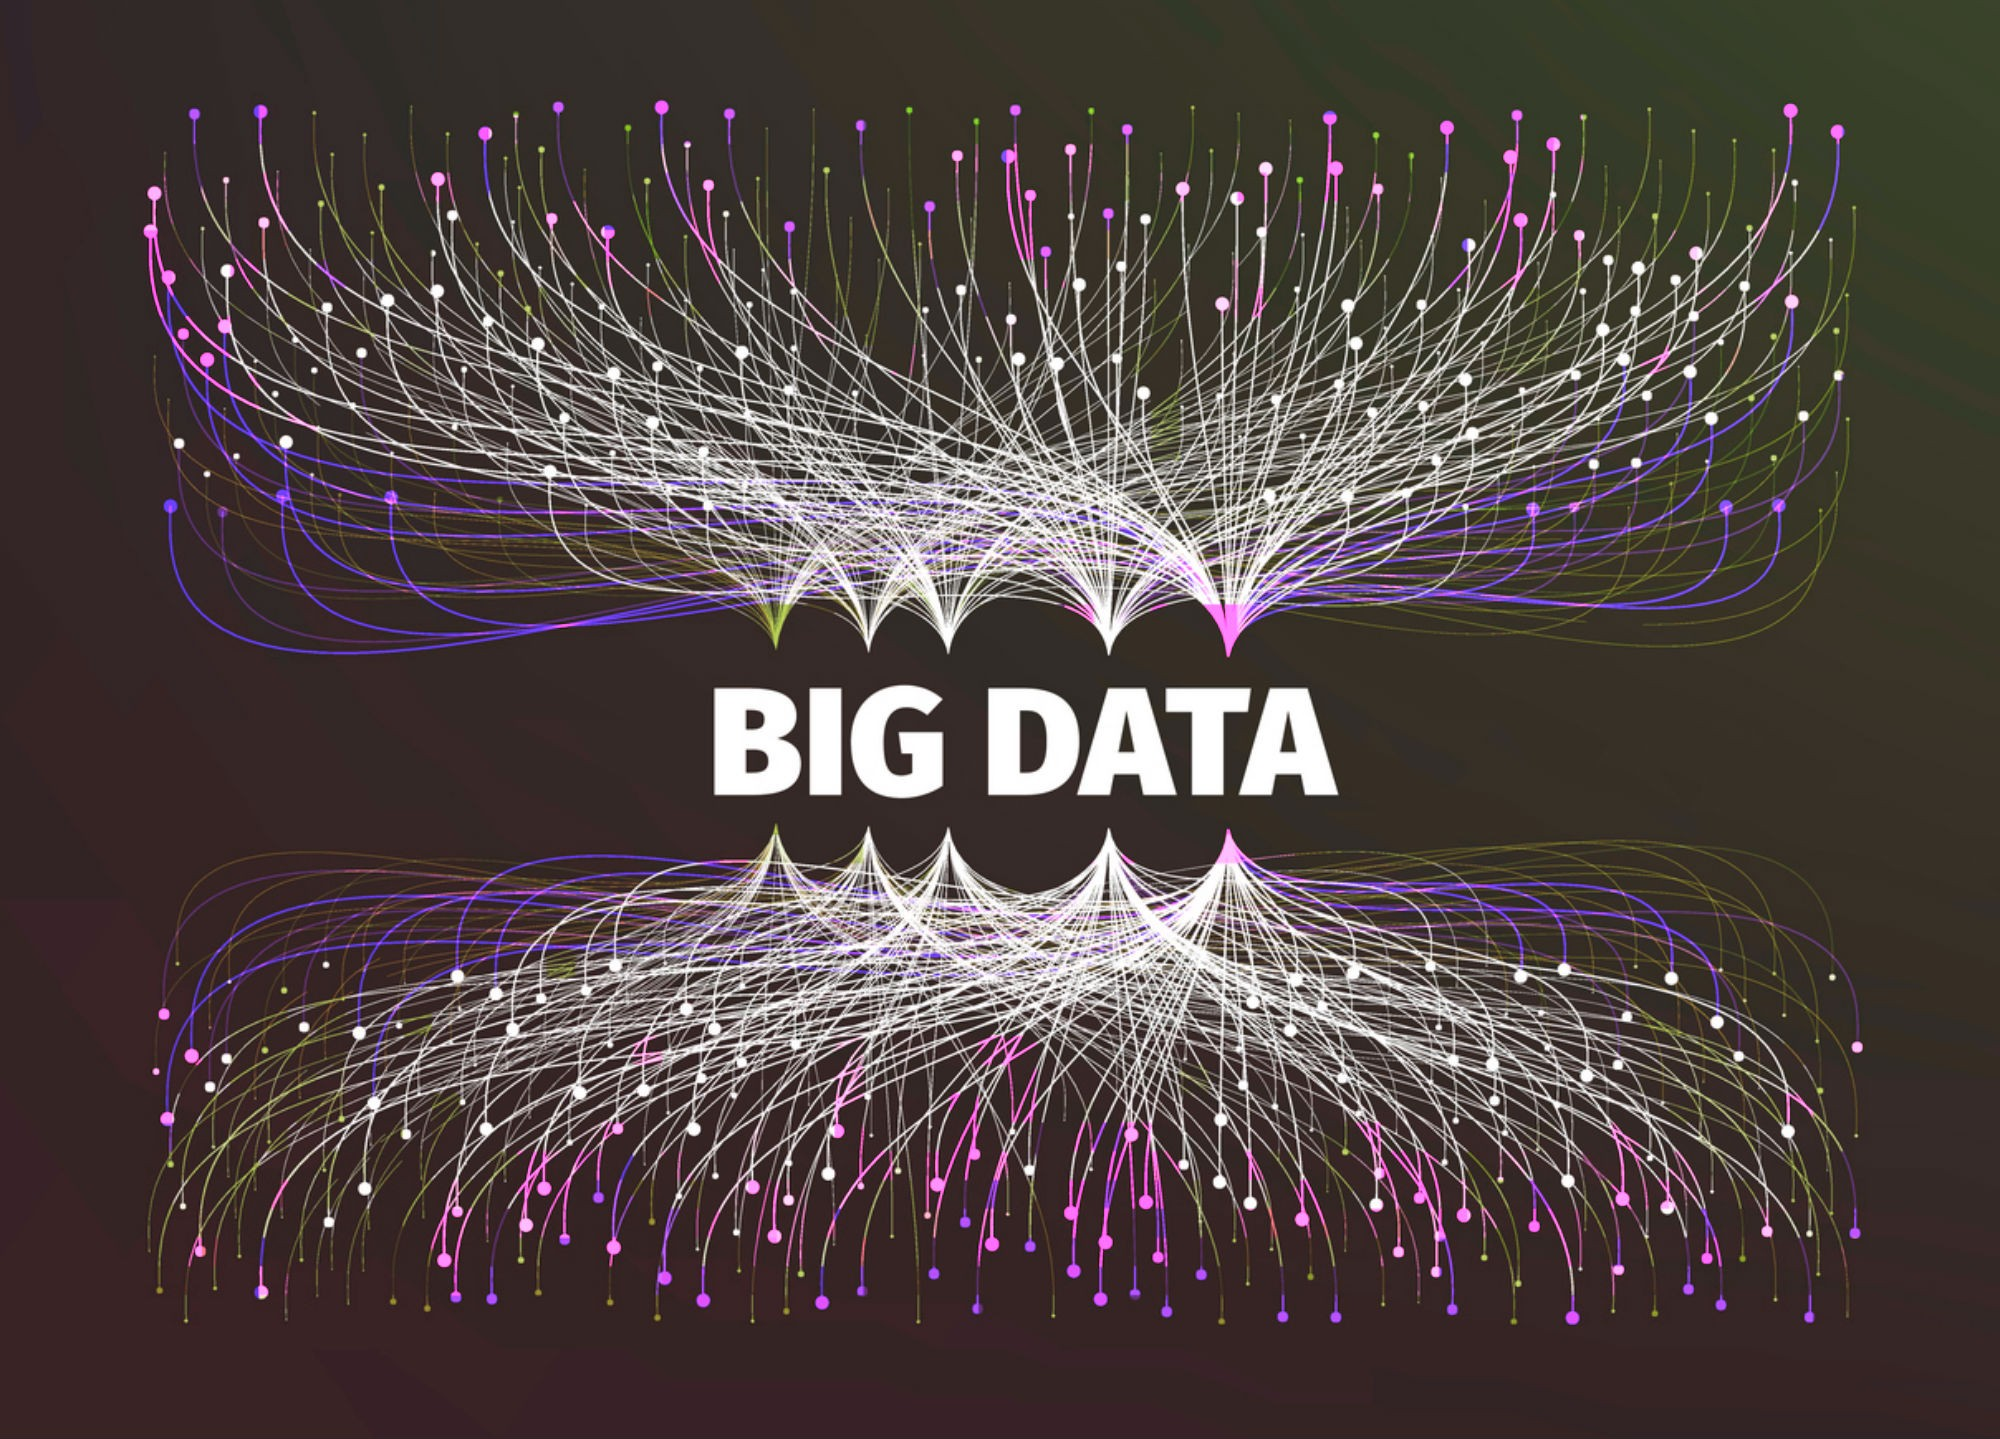 Check out a Possible Big, Huge, and Massive Solution for Big Data and Analytics